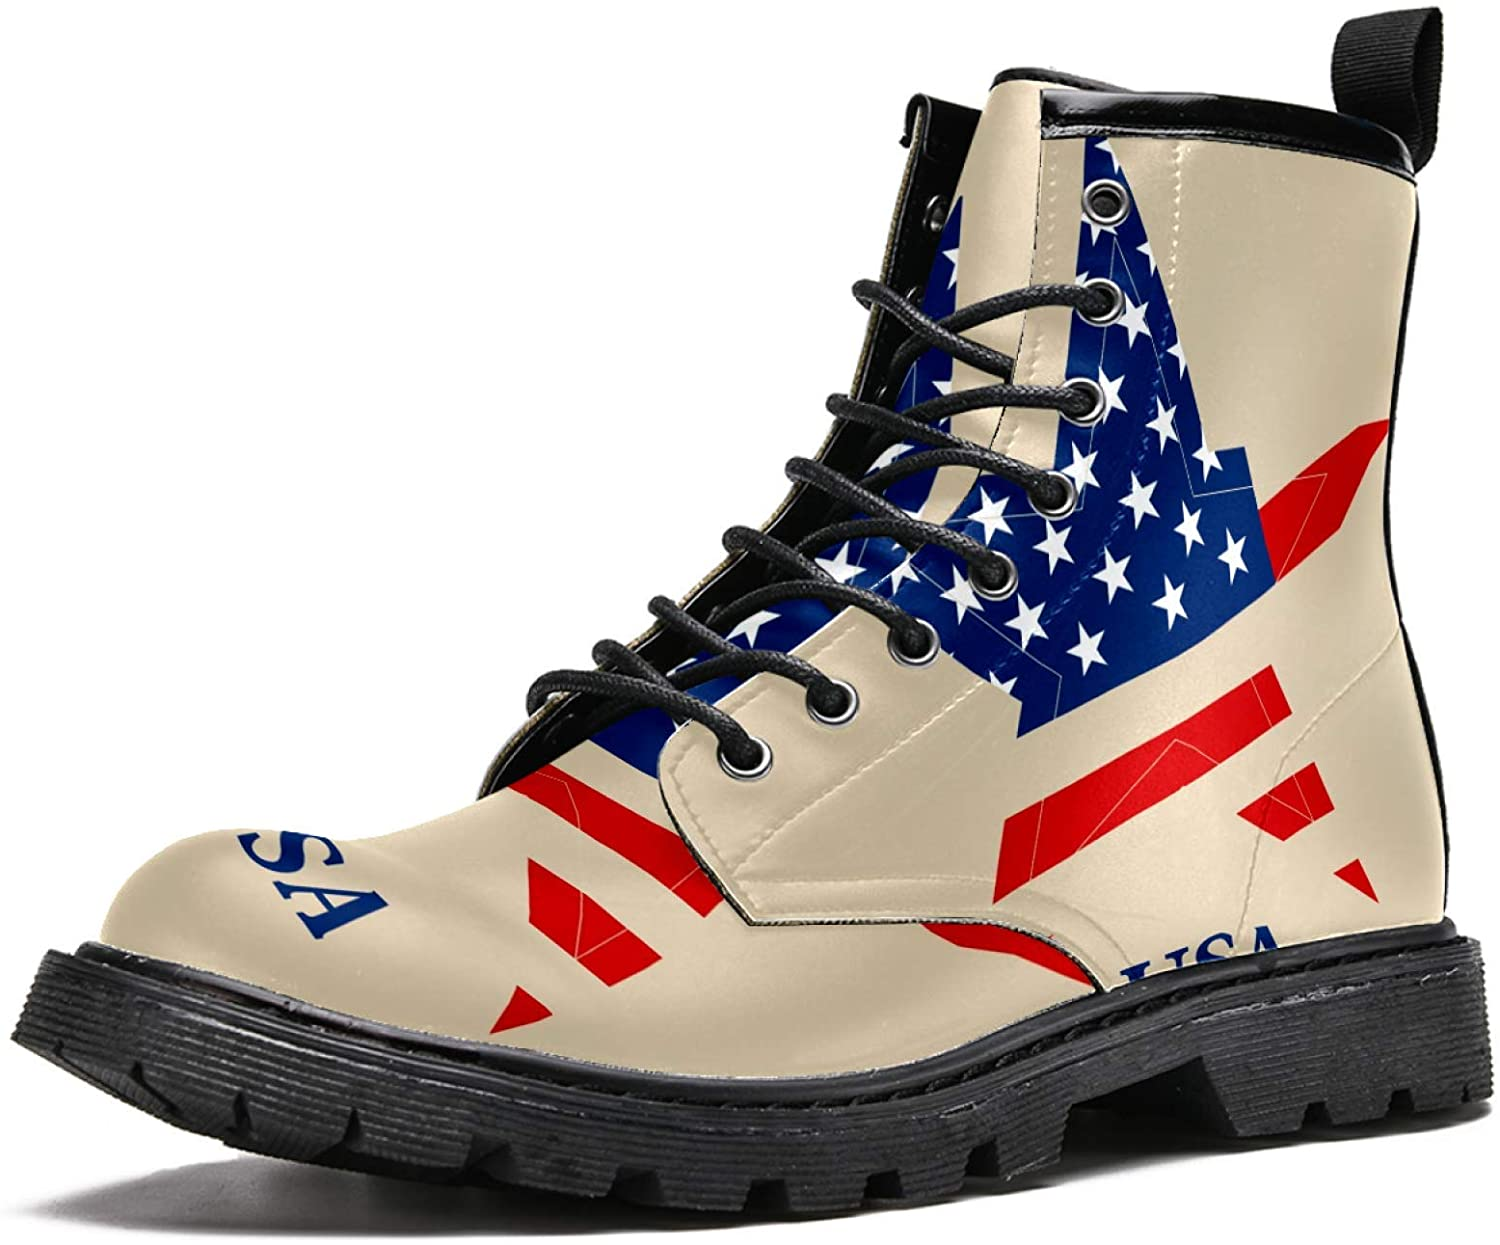 LORVIES American Flag Stars Men's High Top Boots Lace Up Casual Leather Ankle Shoes